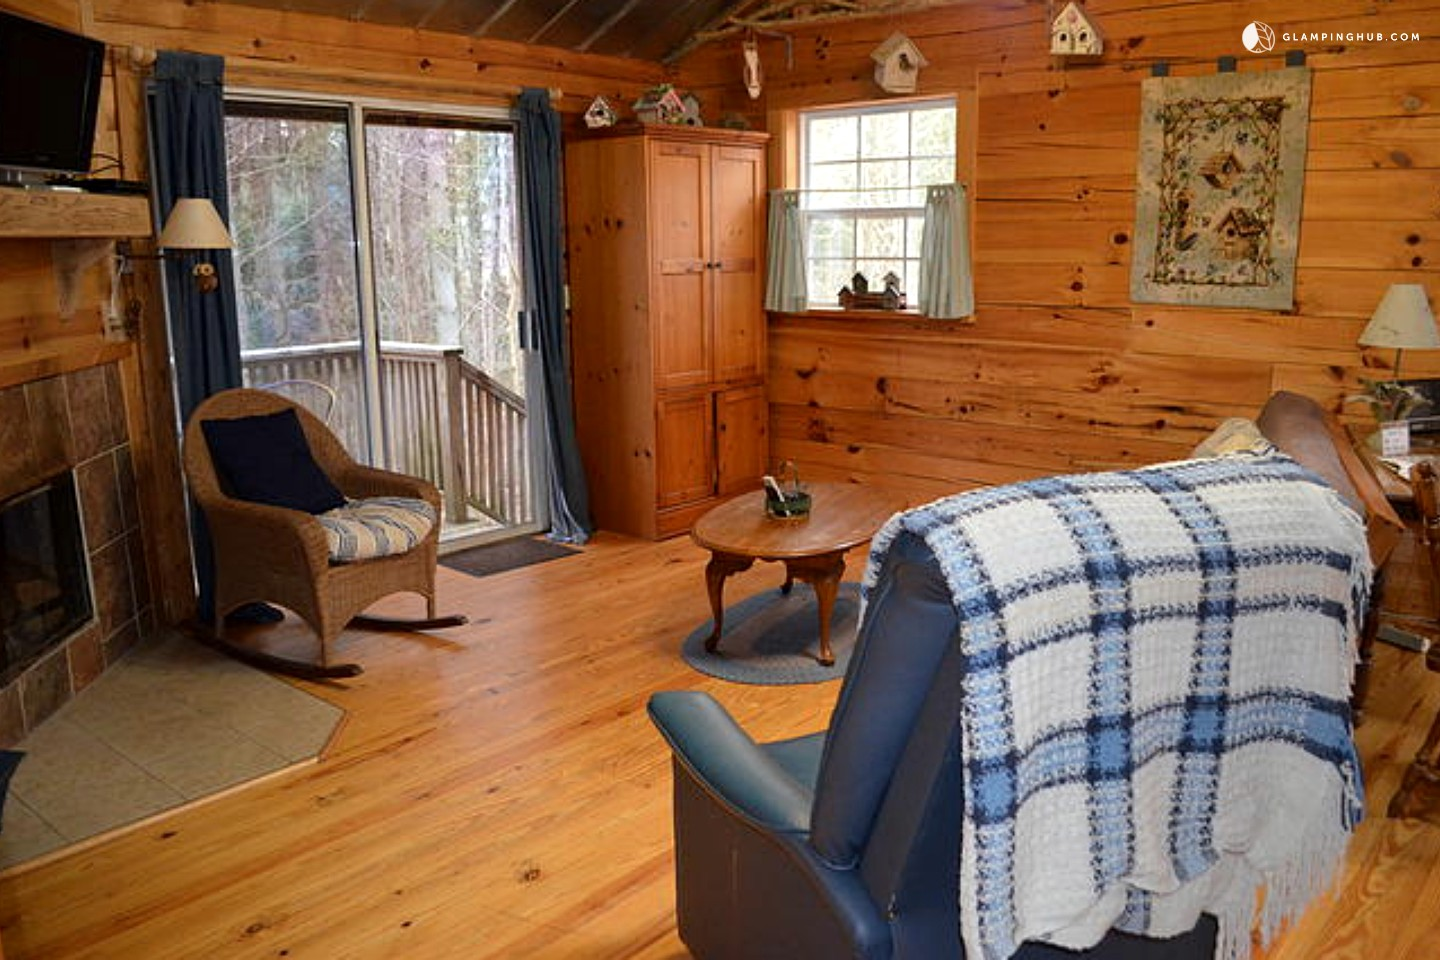 Log cabin rental near asheville north carolina for Asheville cabin rentals pet friendly